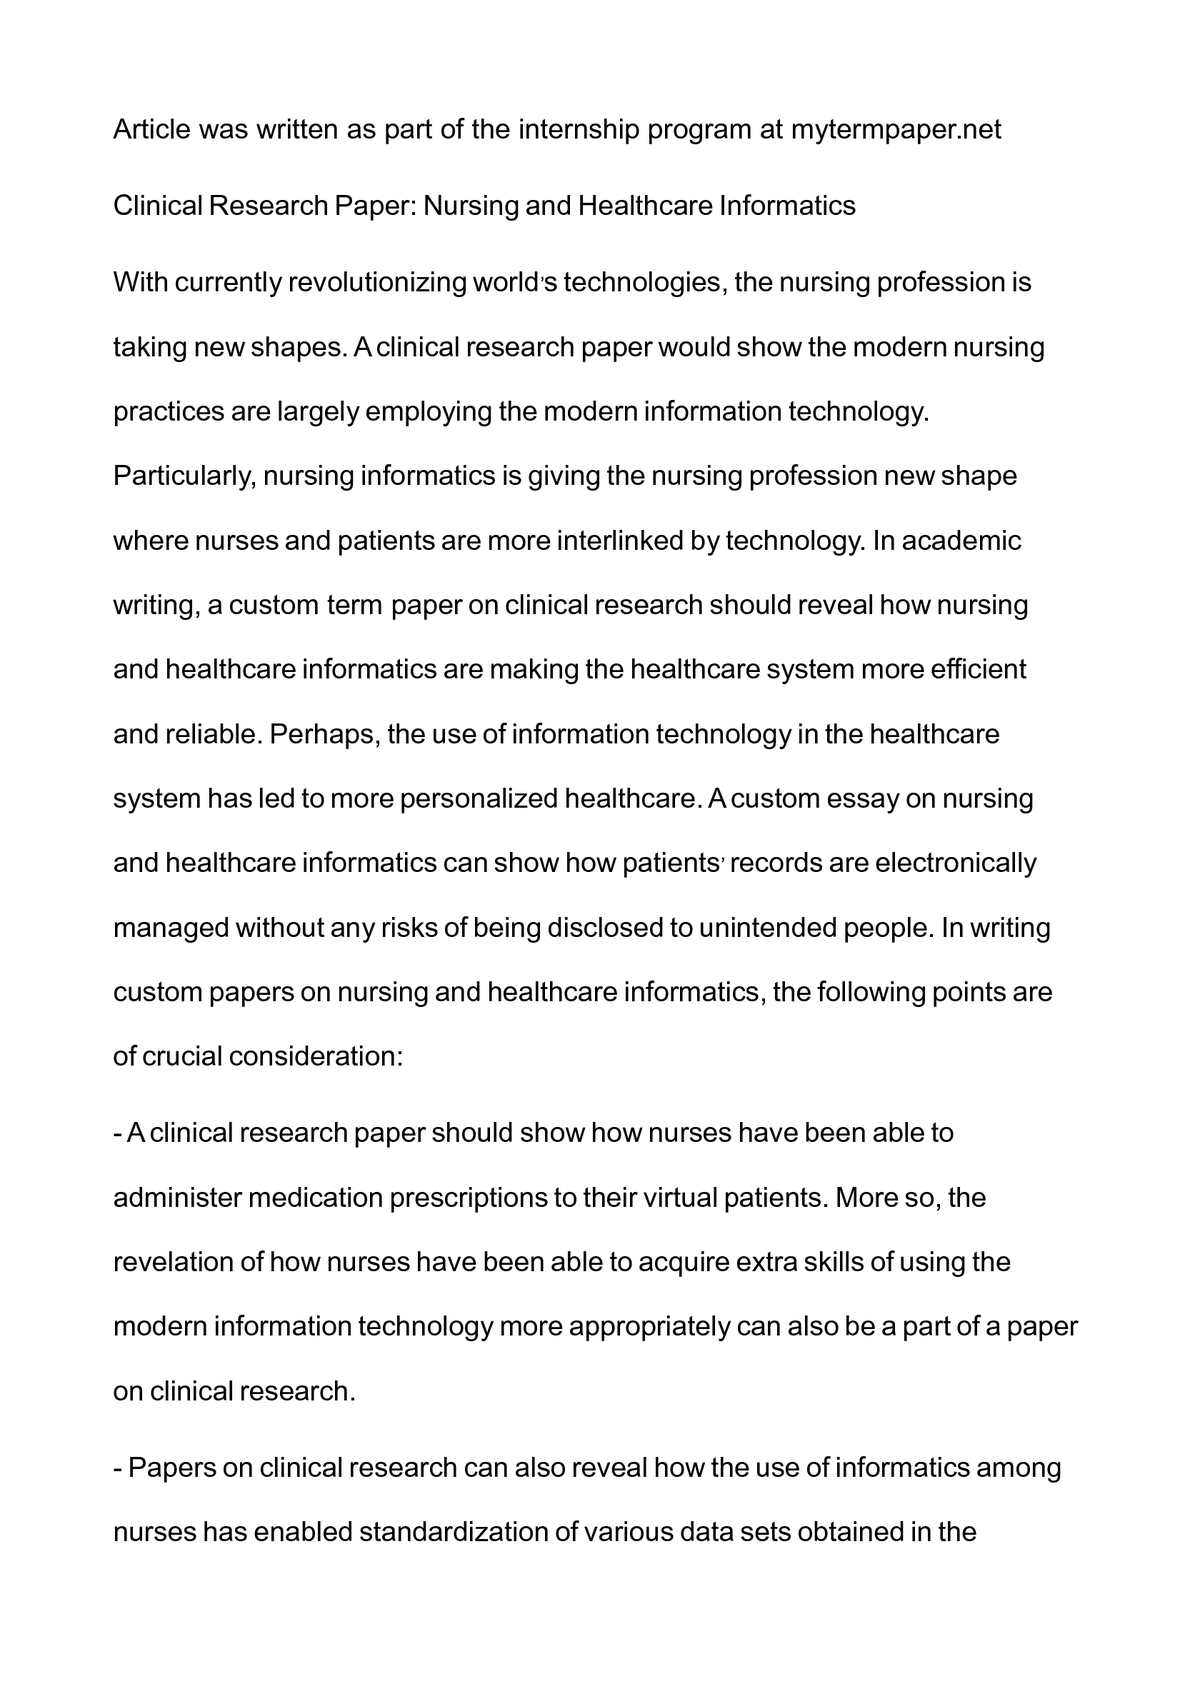 002 P1 Research Paper About Unforgettable Nursing Topics On Home Abuse And Neglect Shortage Full